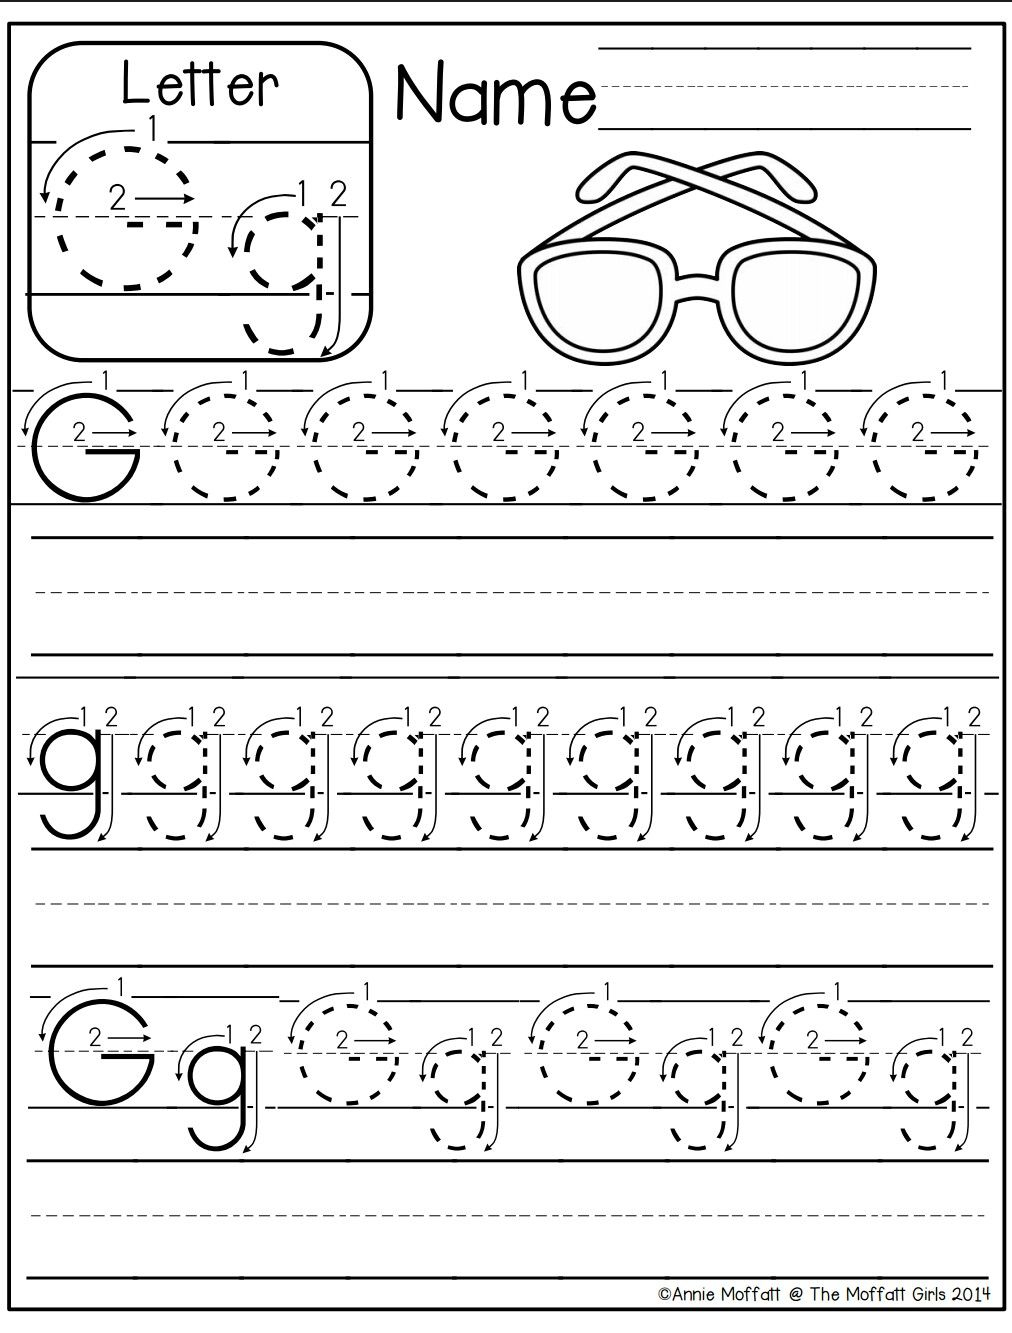 Letter G Worksheet | Preschool Writing, Letter G Worksheets regarding Letter G Worksheets For Toddlers